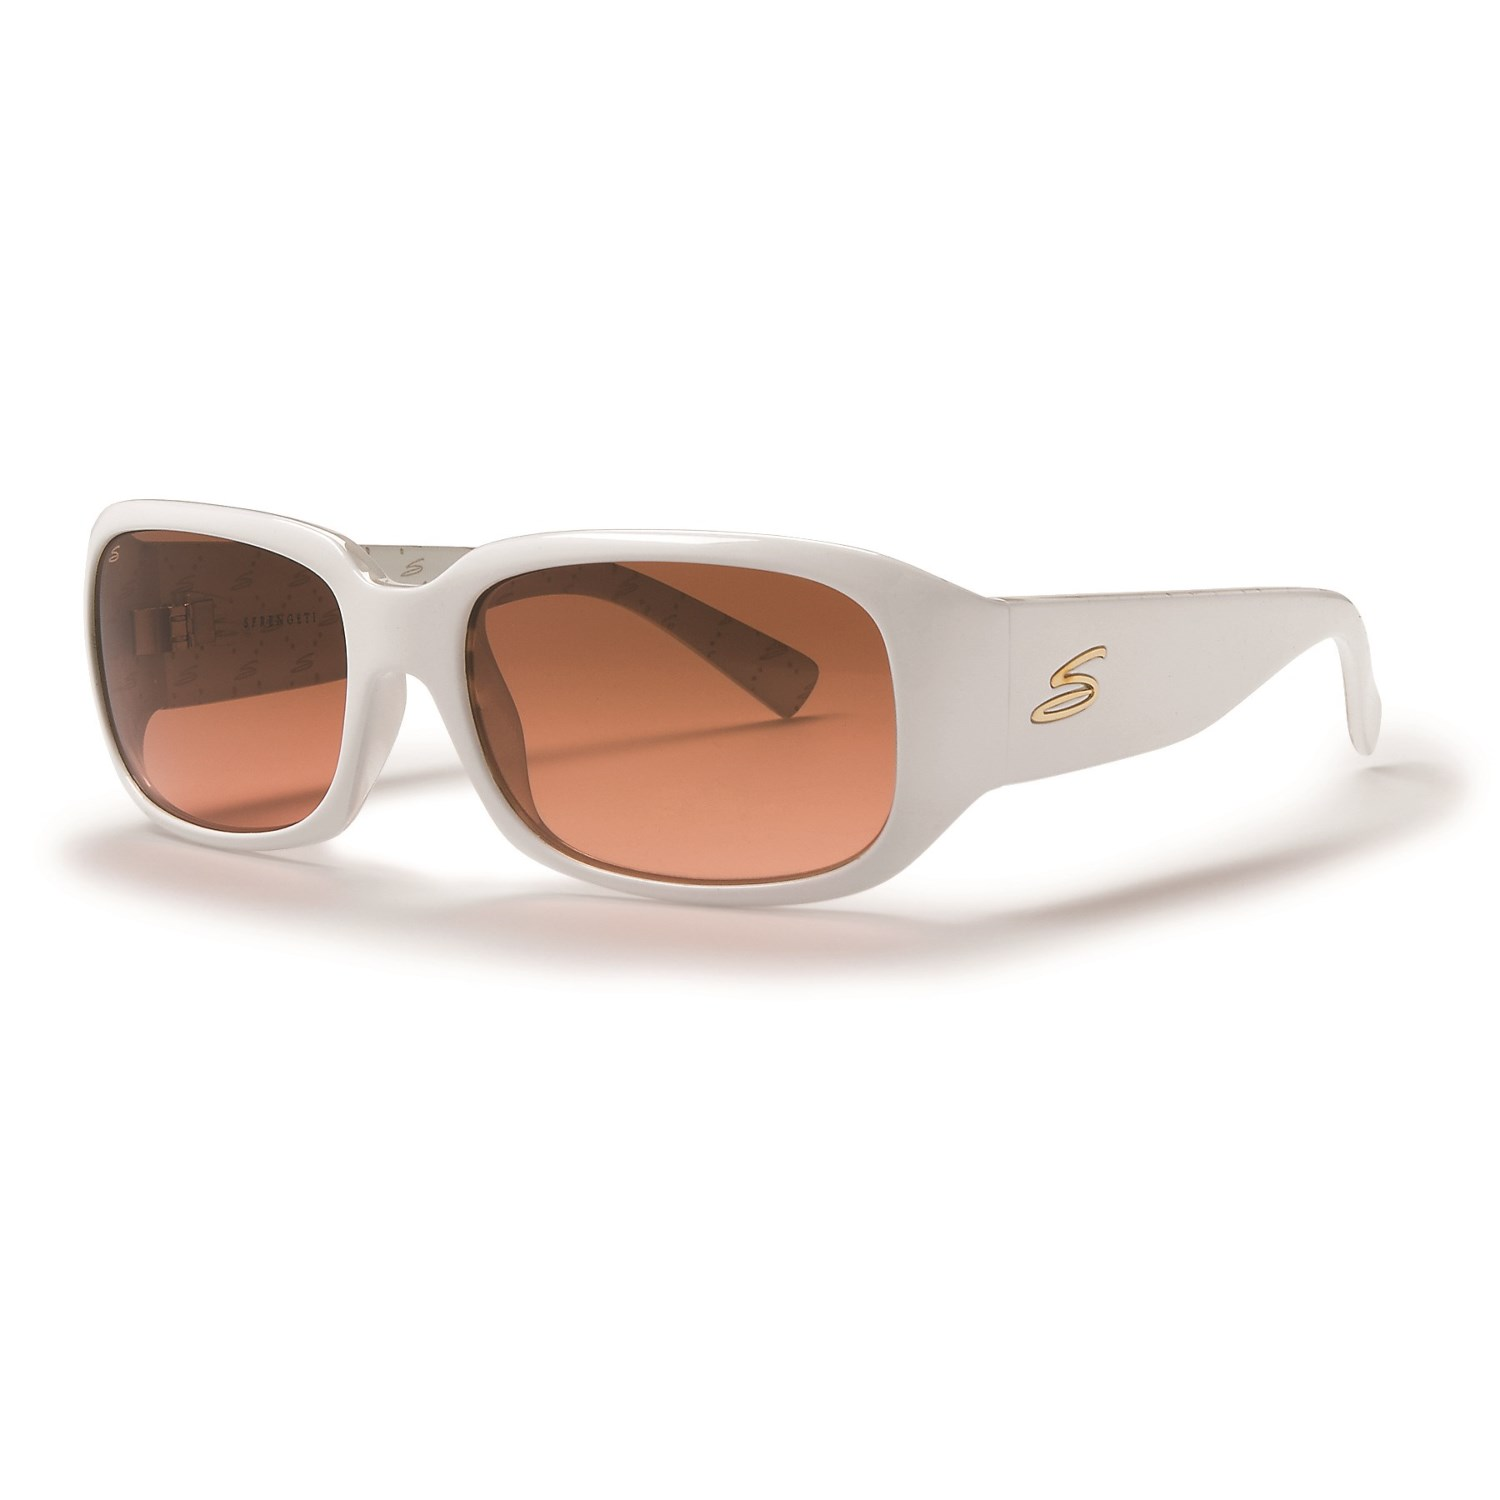 a3c14253a0c6 Serengeti Giuliana Sunglasses (For Women) - Save 41%